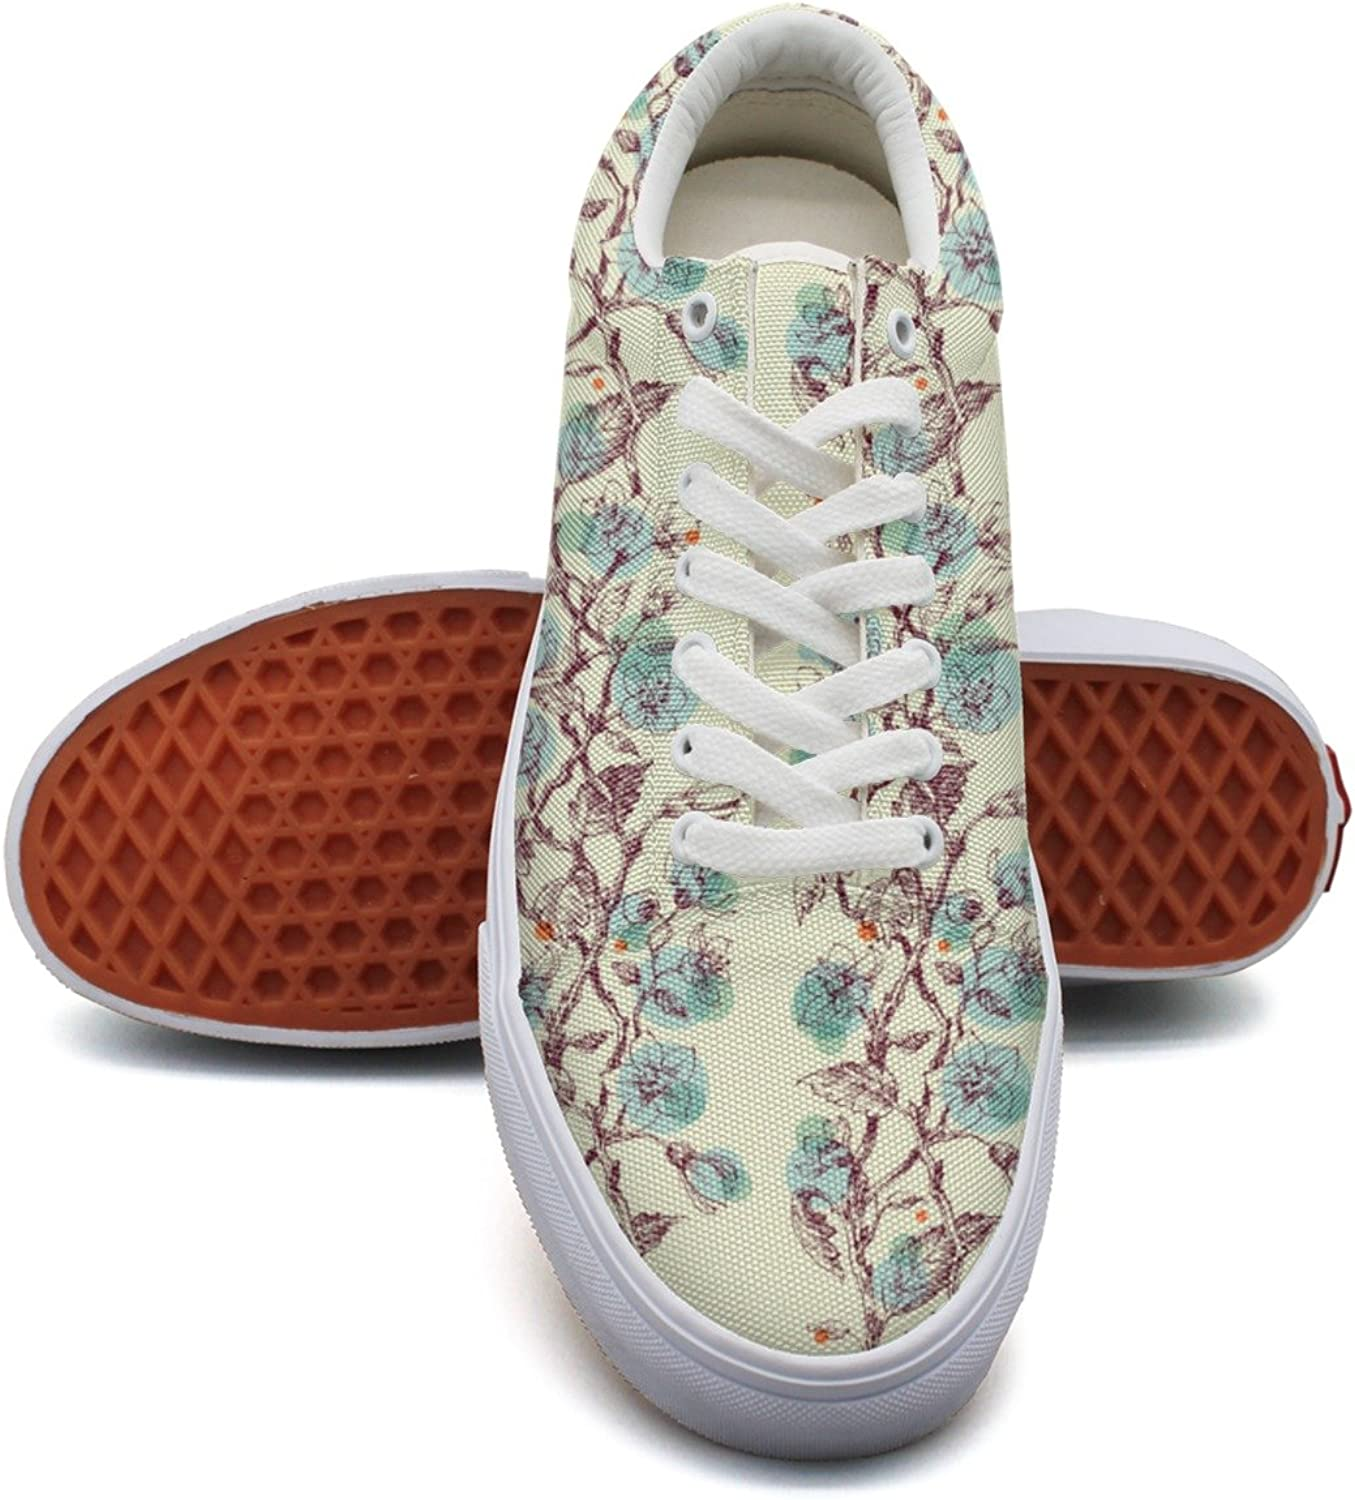 Climbing Flowering Plants Womens Printed Canvas Tennis shoes Low Top Trendy Tennis shoes for Women's